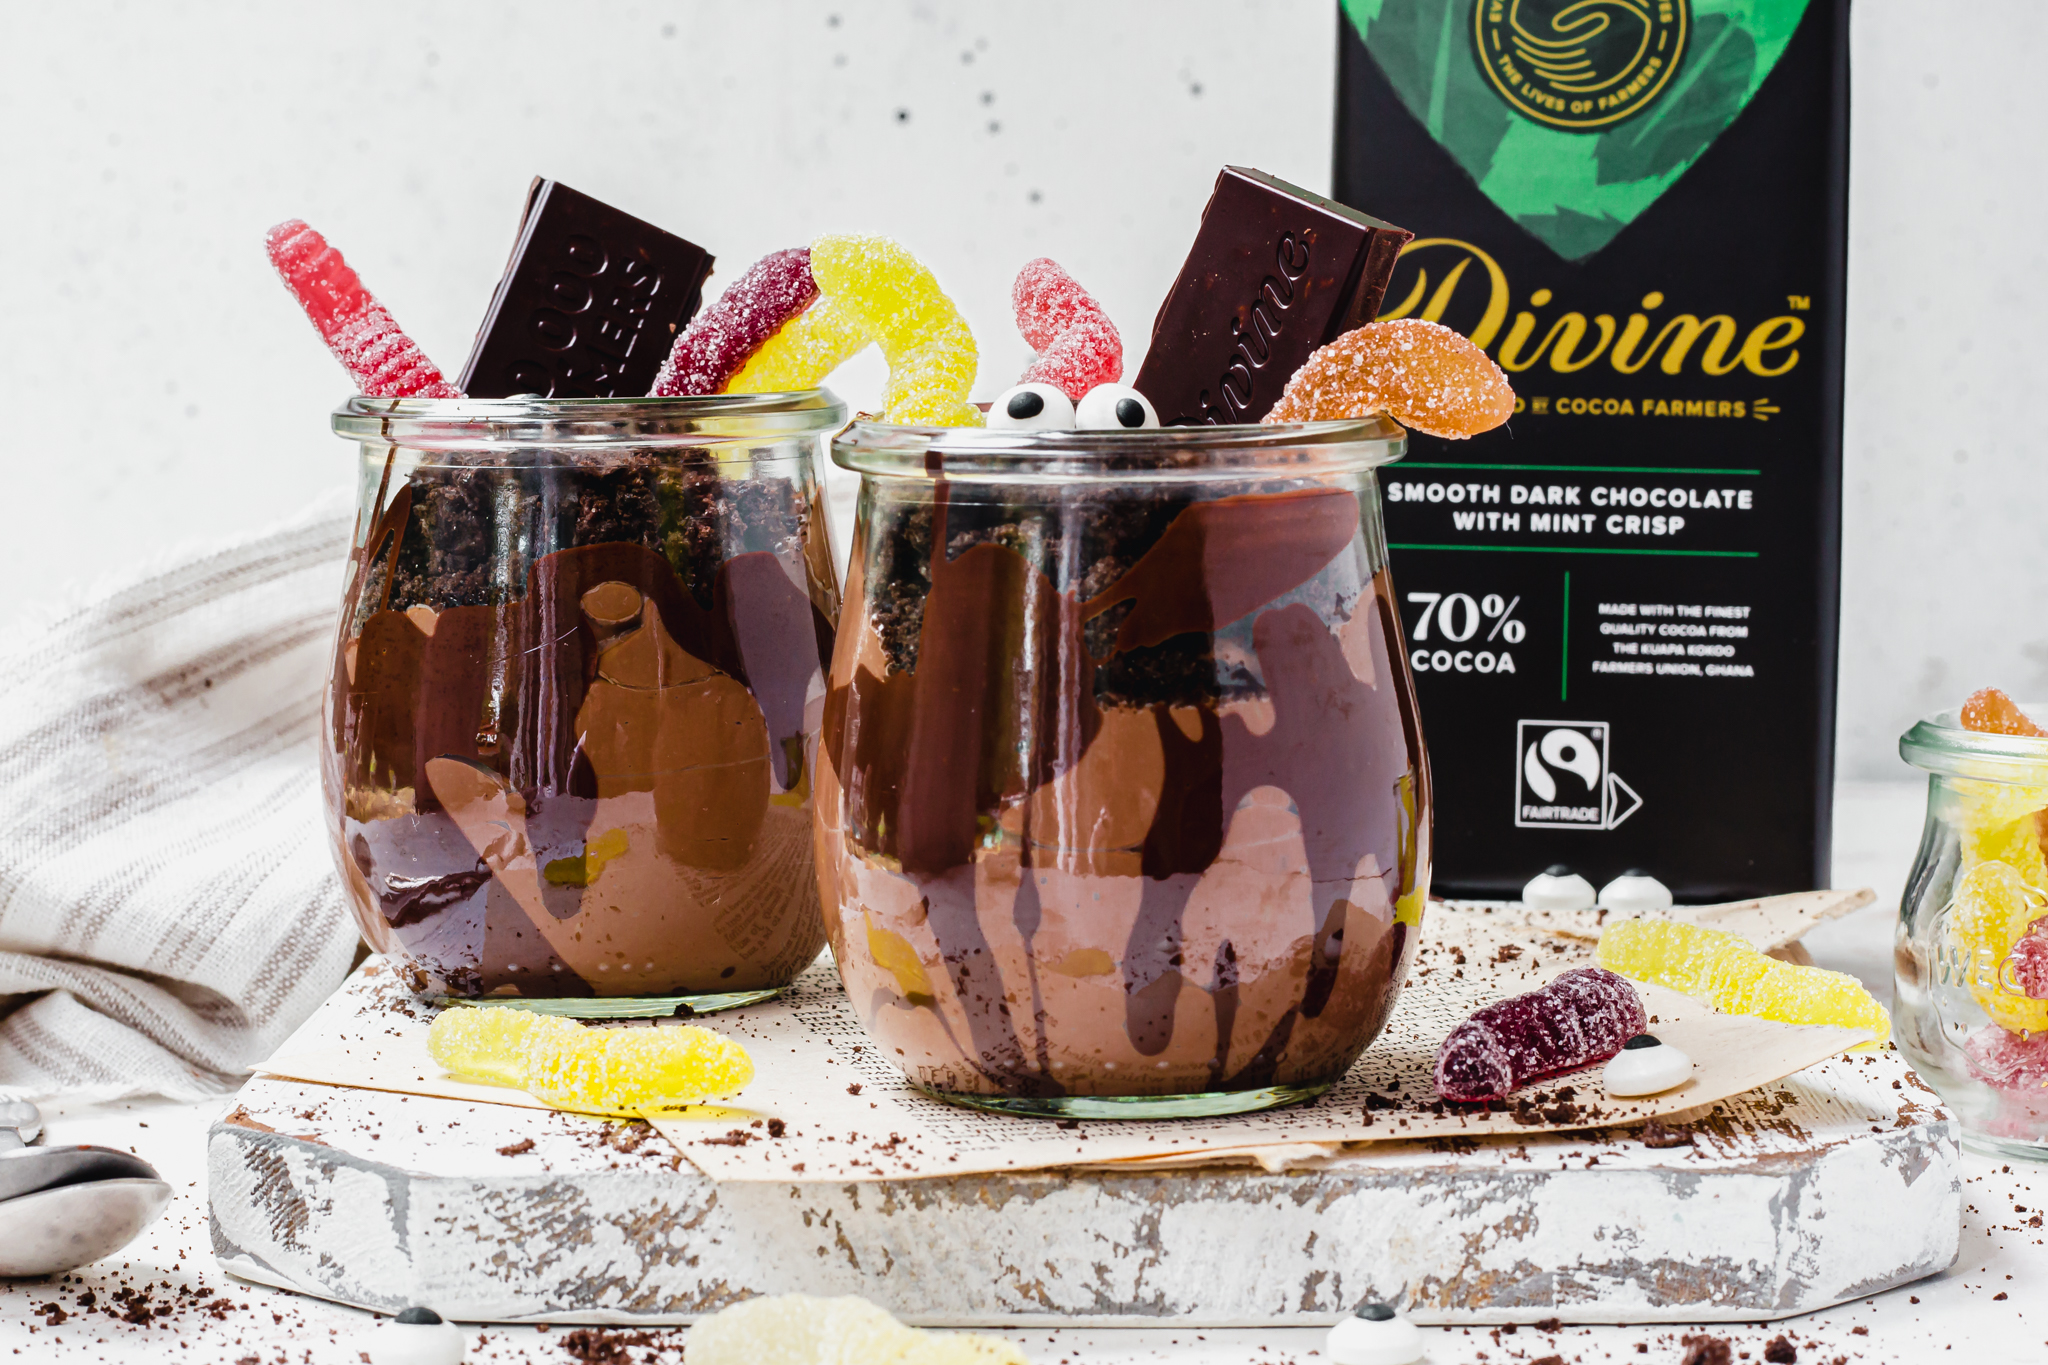 Wiggly Worm Chocolate Dirt Pots